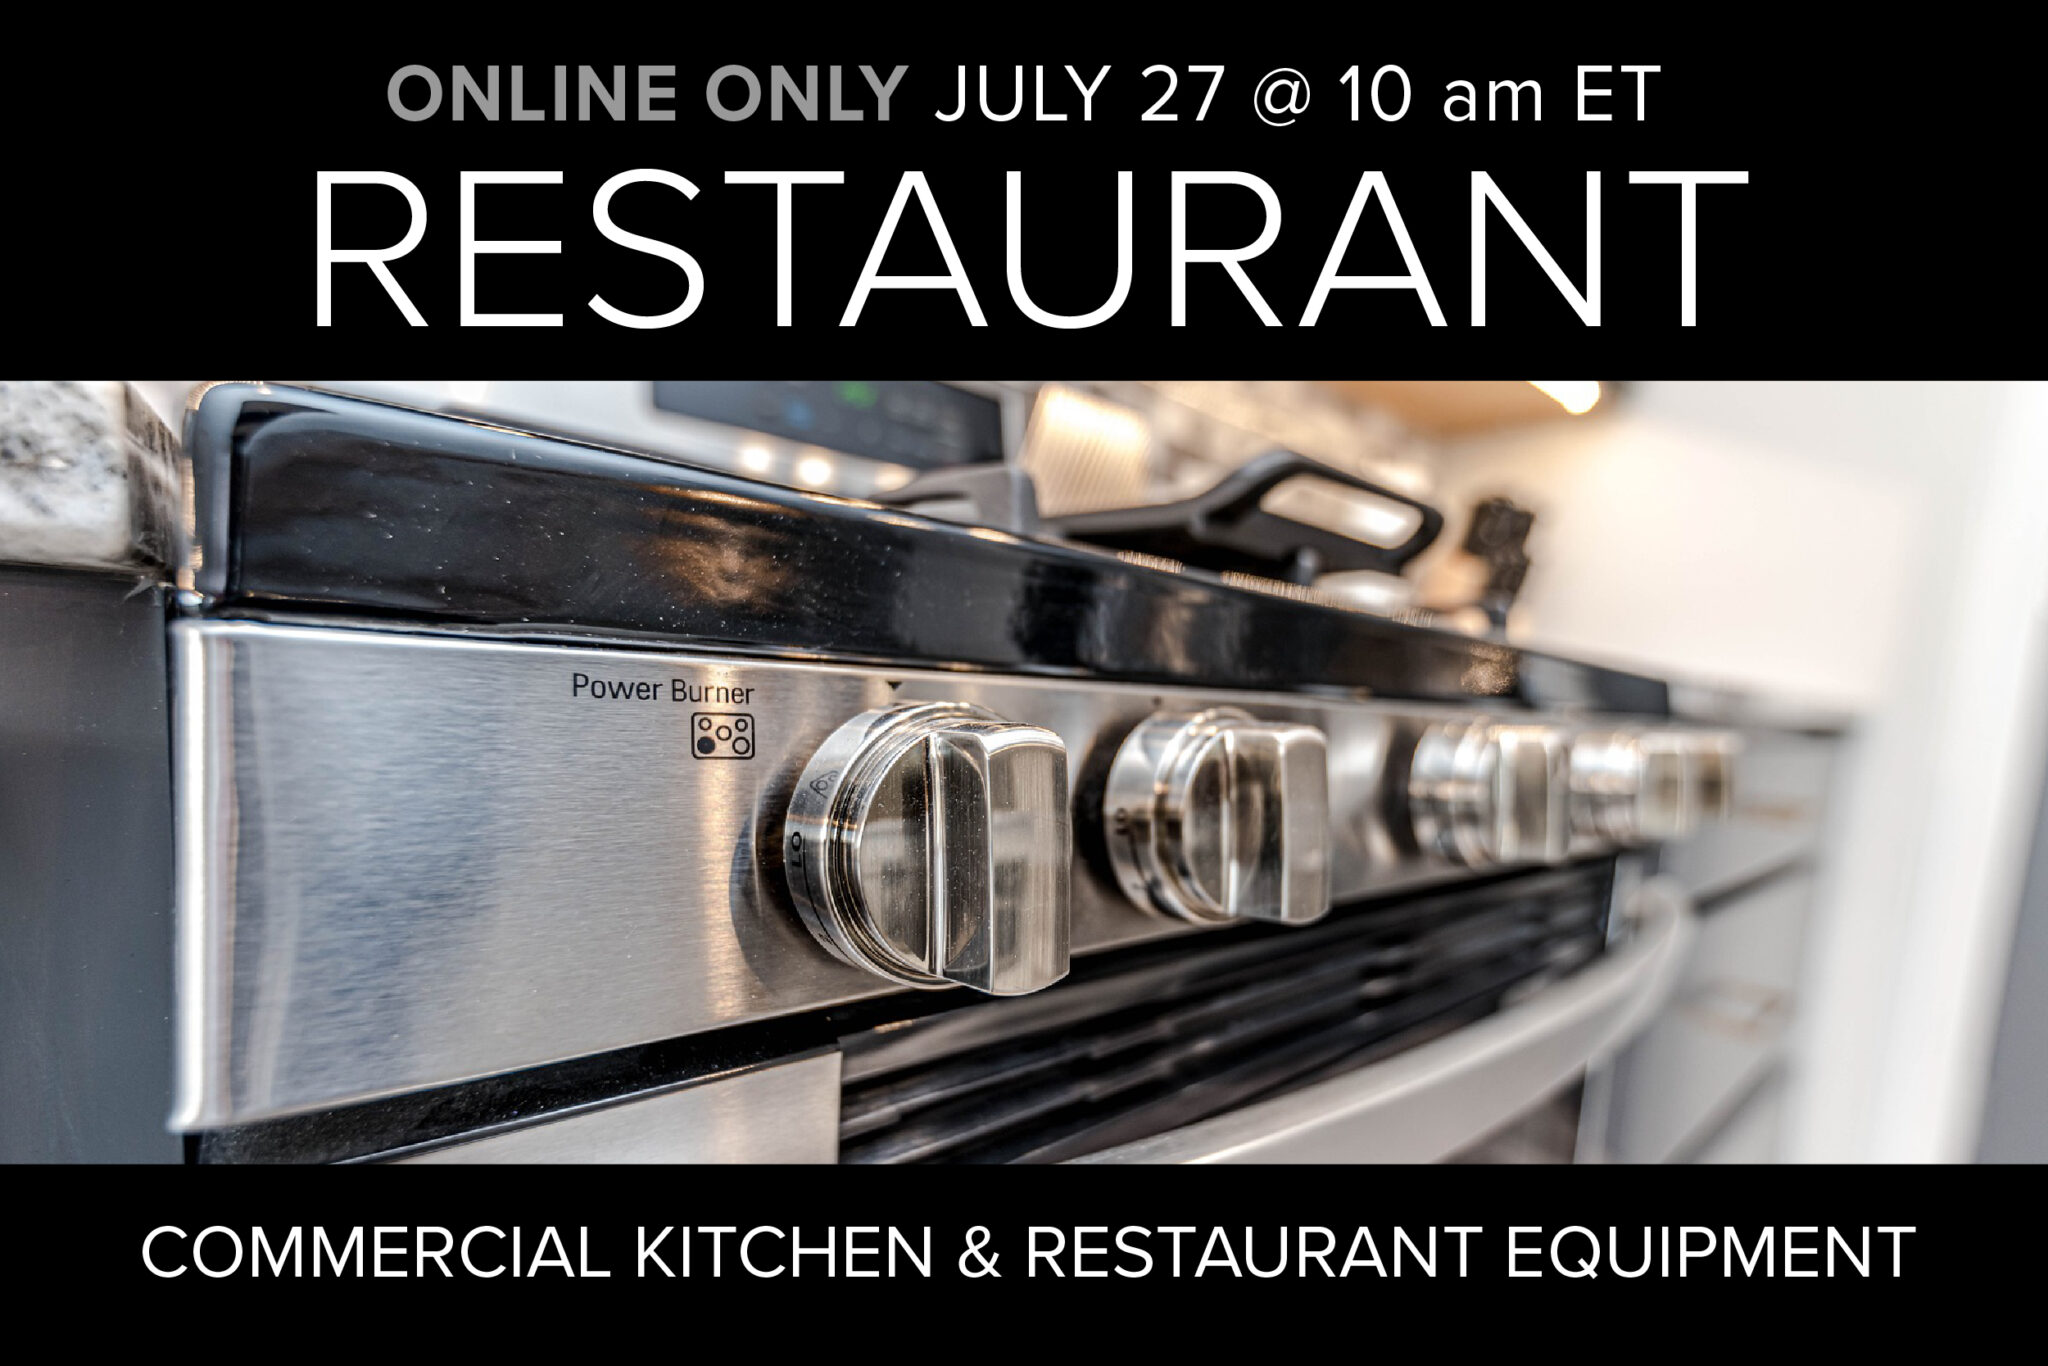 Restaurant Online Only Auction on July 27 at 10am ET